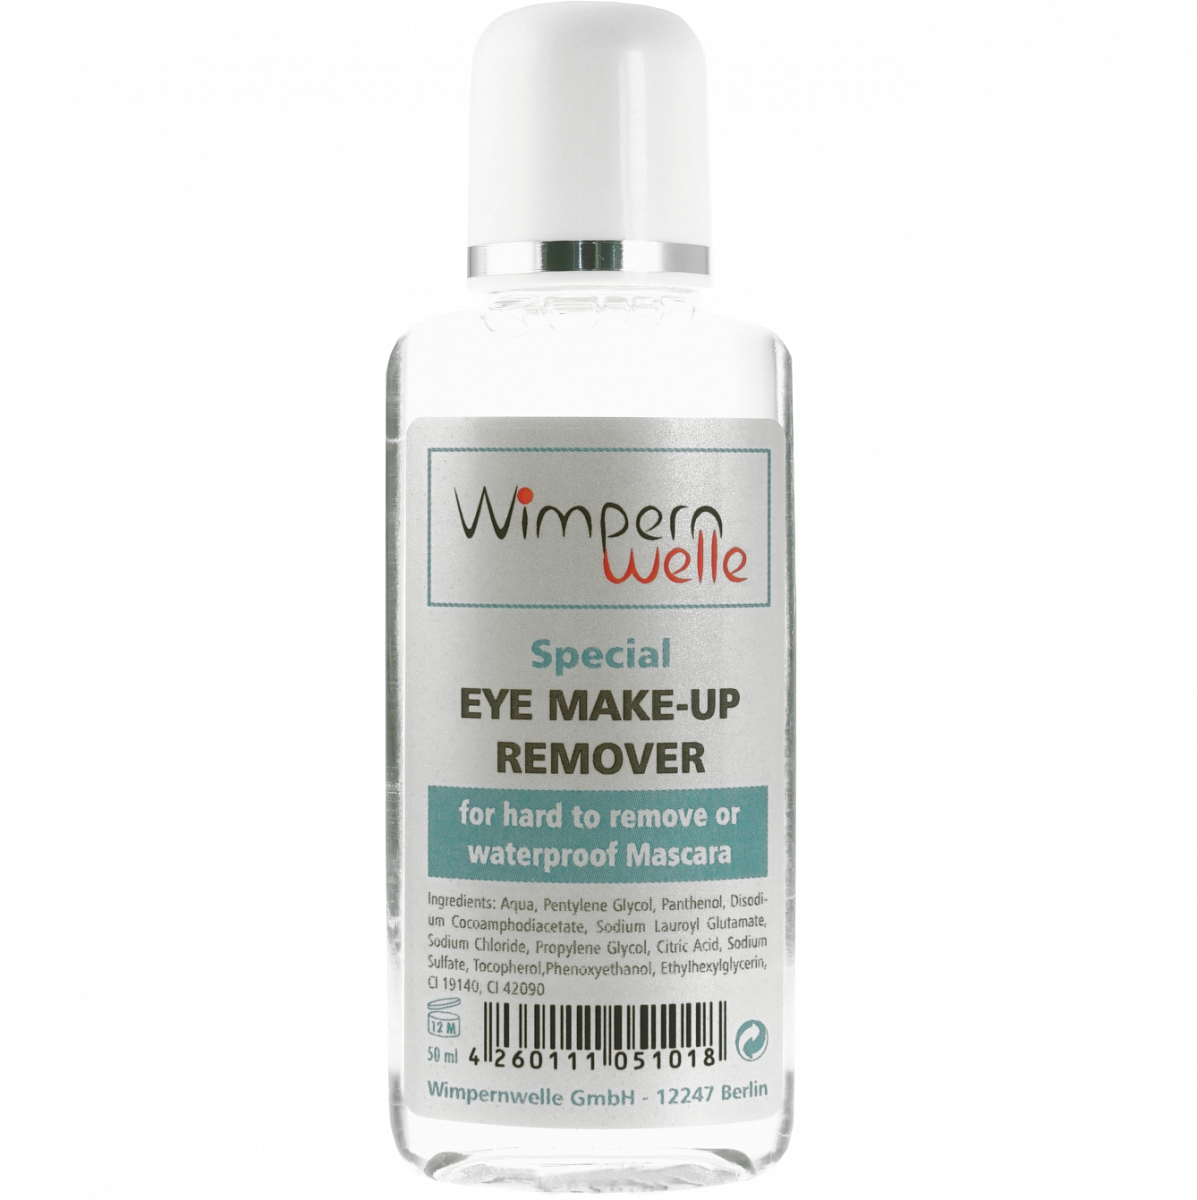 Special EYE MAKE-UP REMOVER